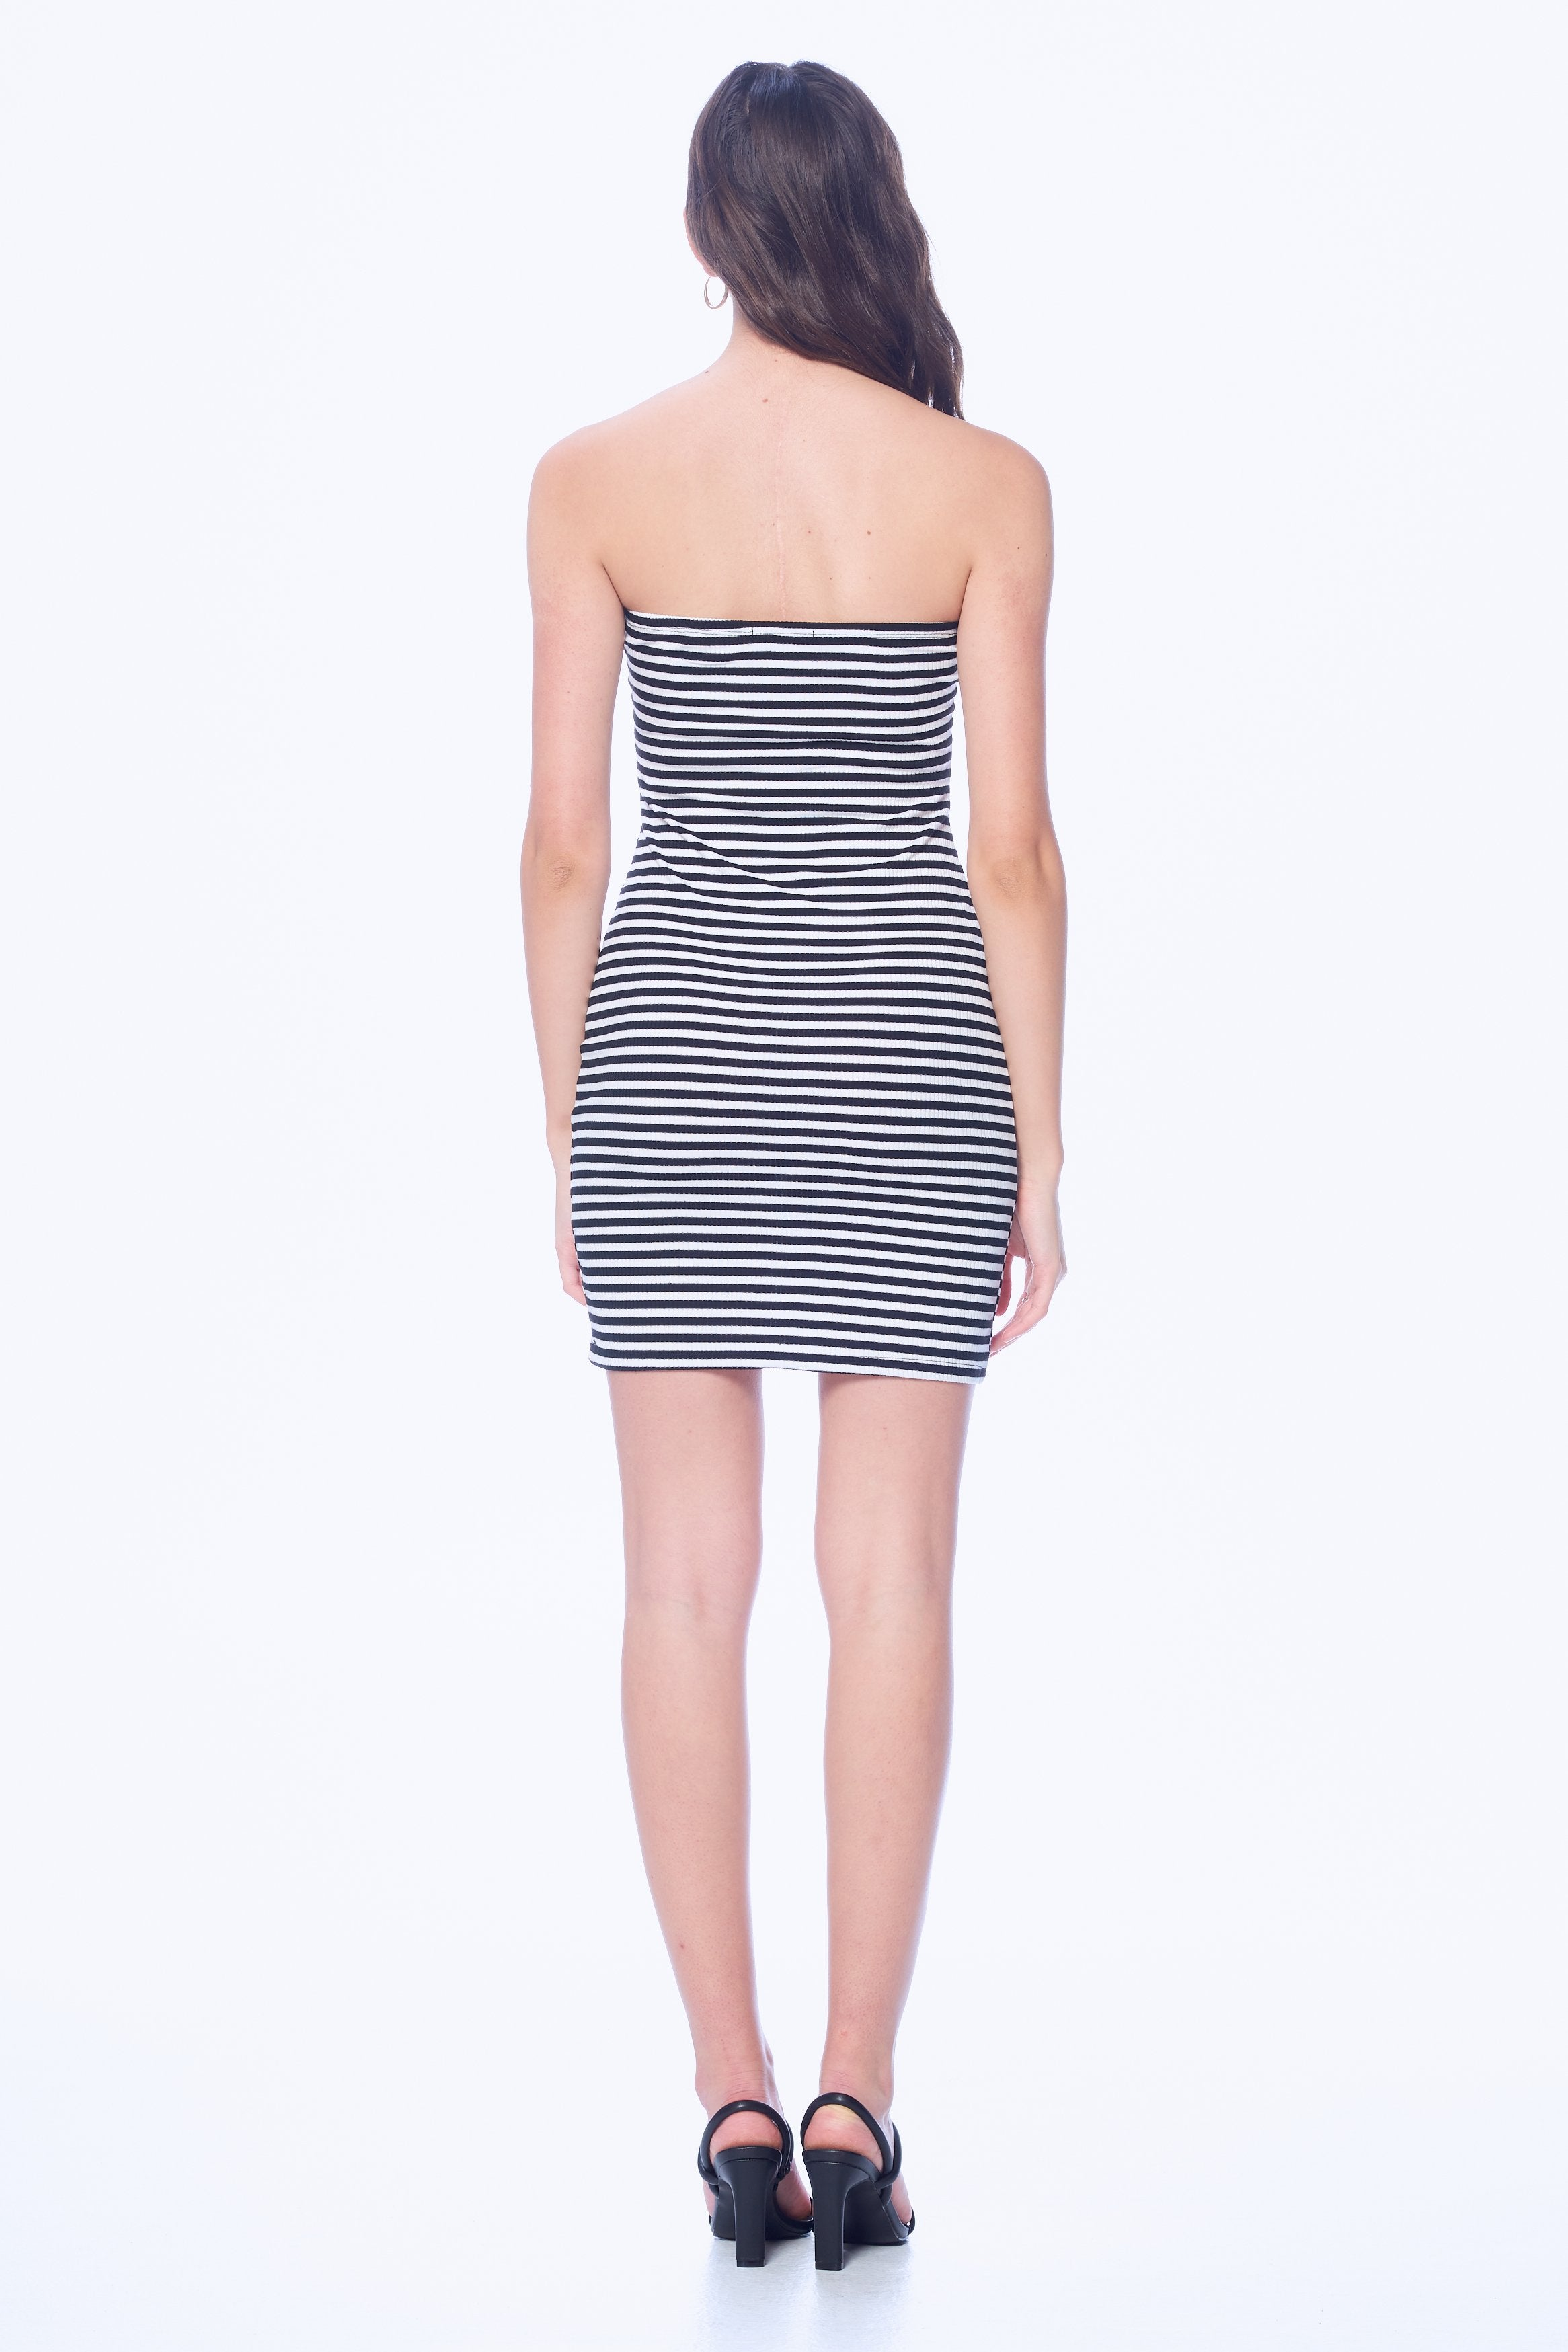 Khanomak Women's Striped Midi Ribbed Basic Bodycon Fitted Tube Dress